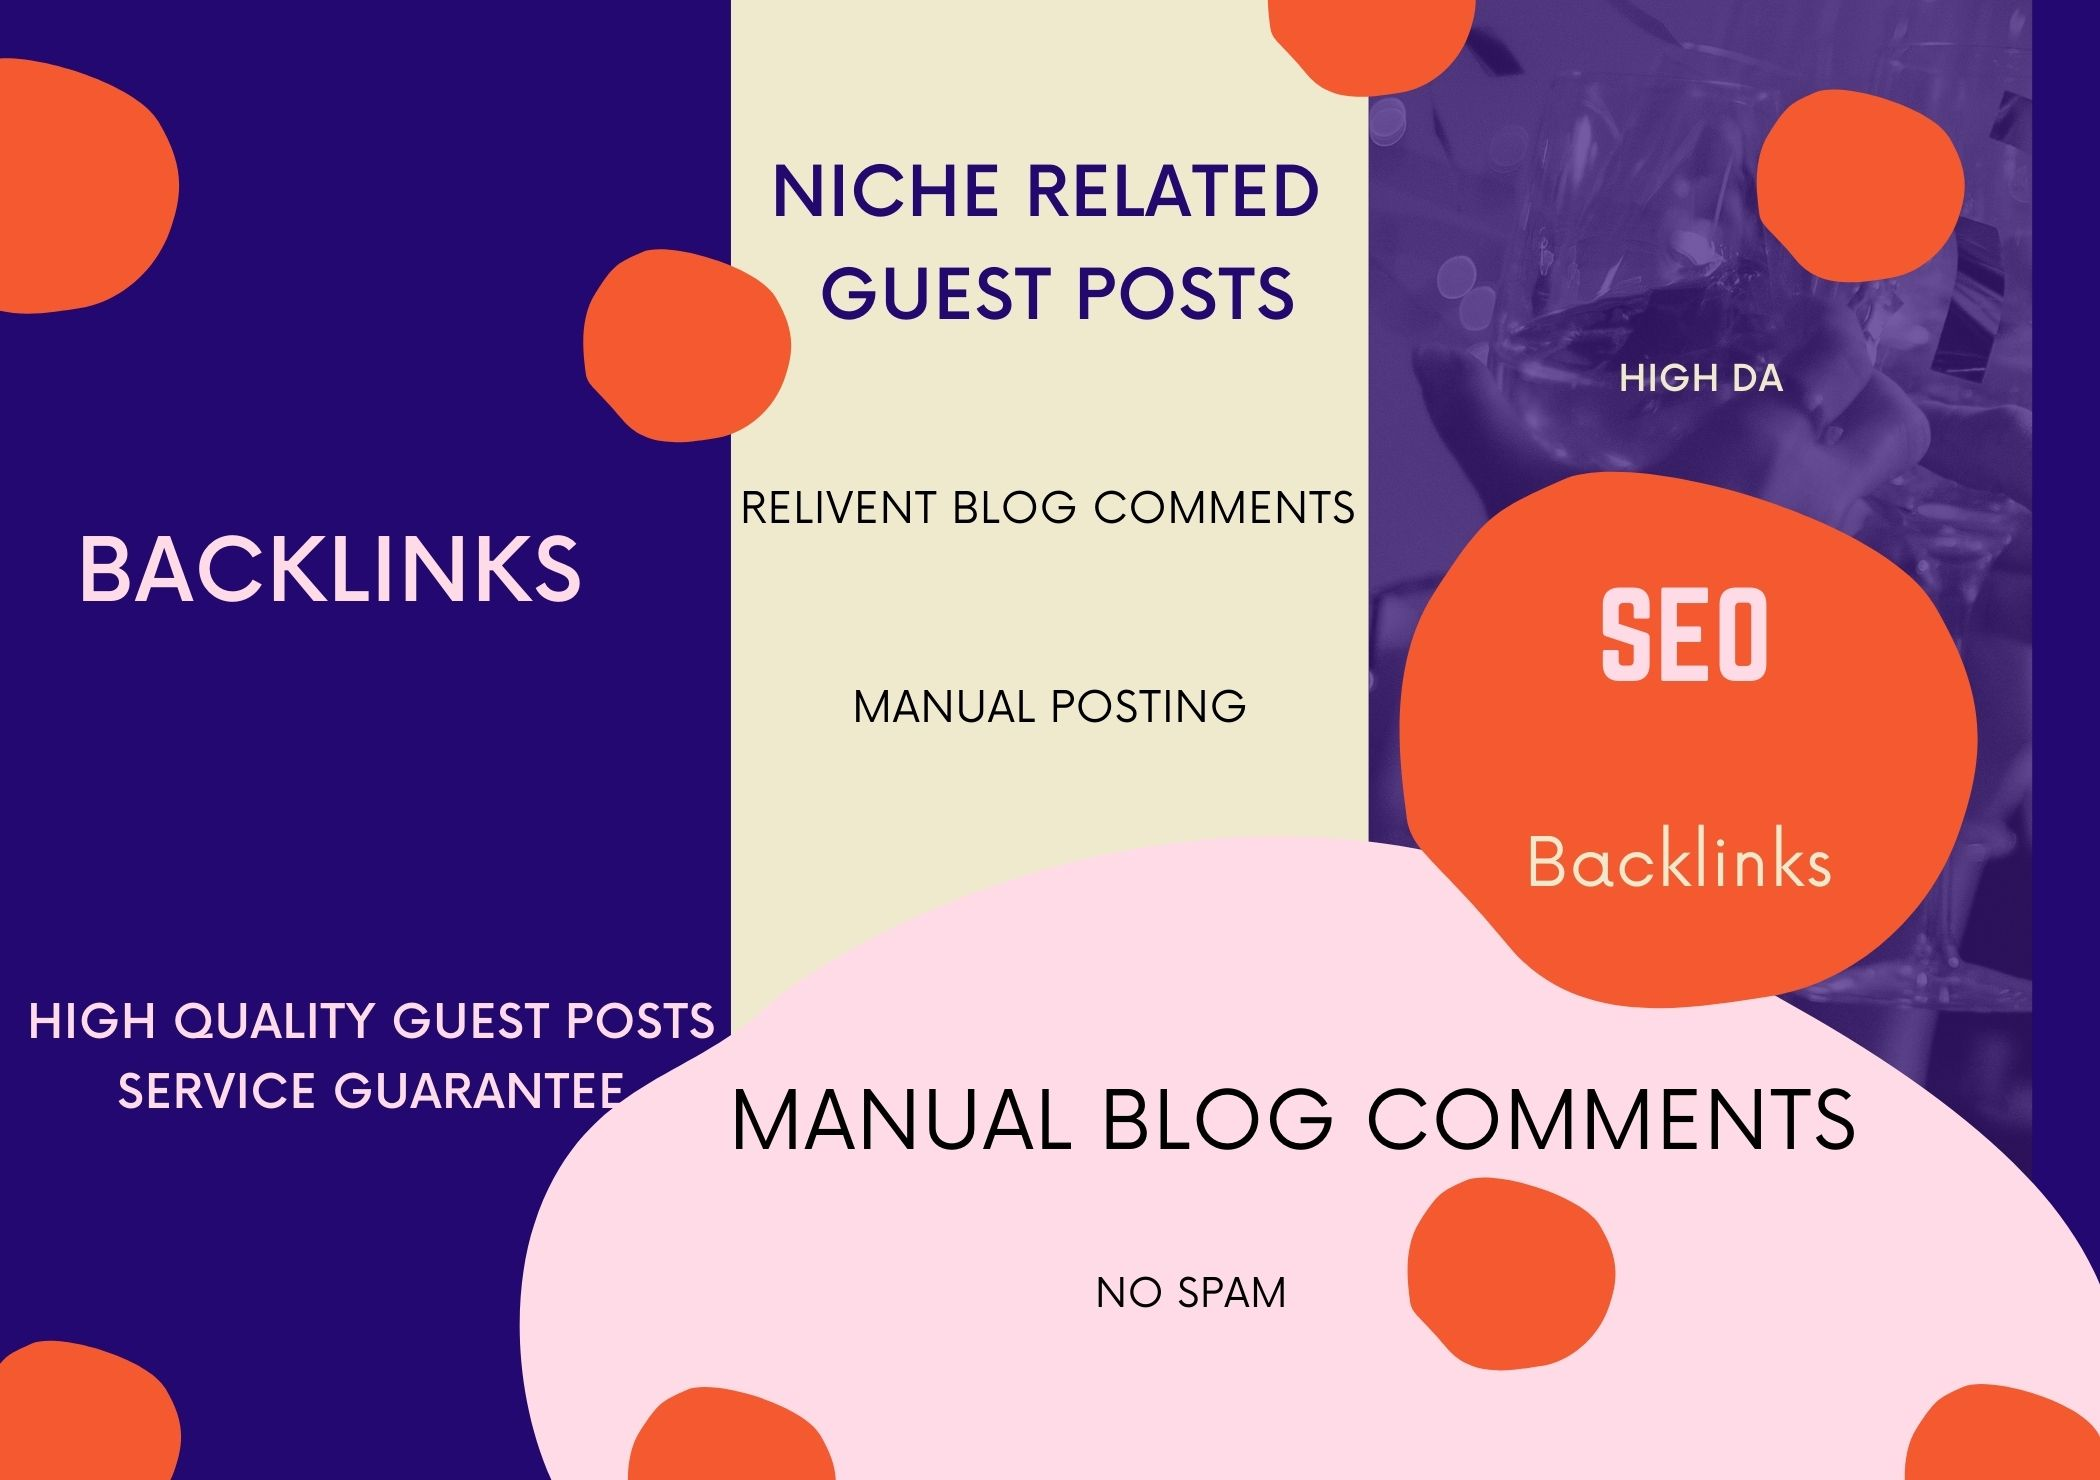 I will do Niche related manual blog comments and backlinks.